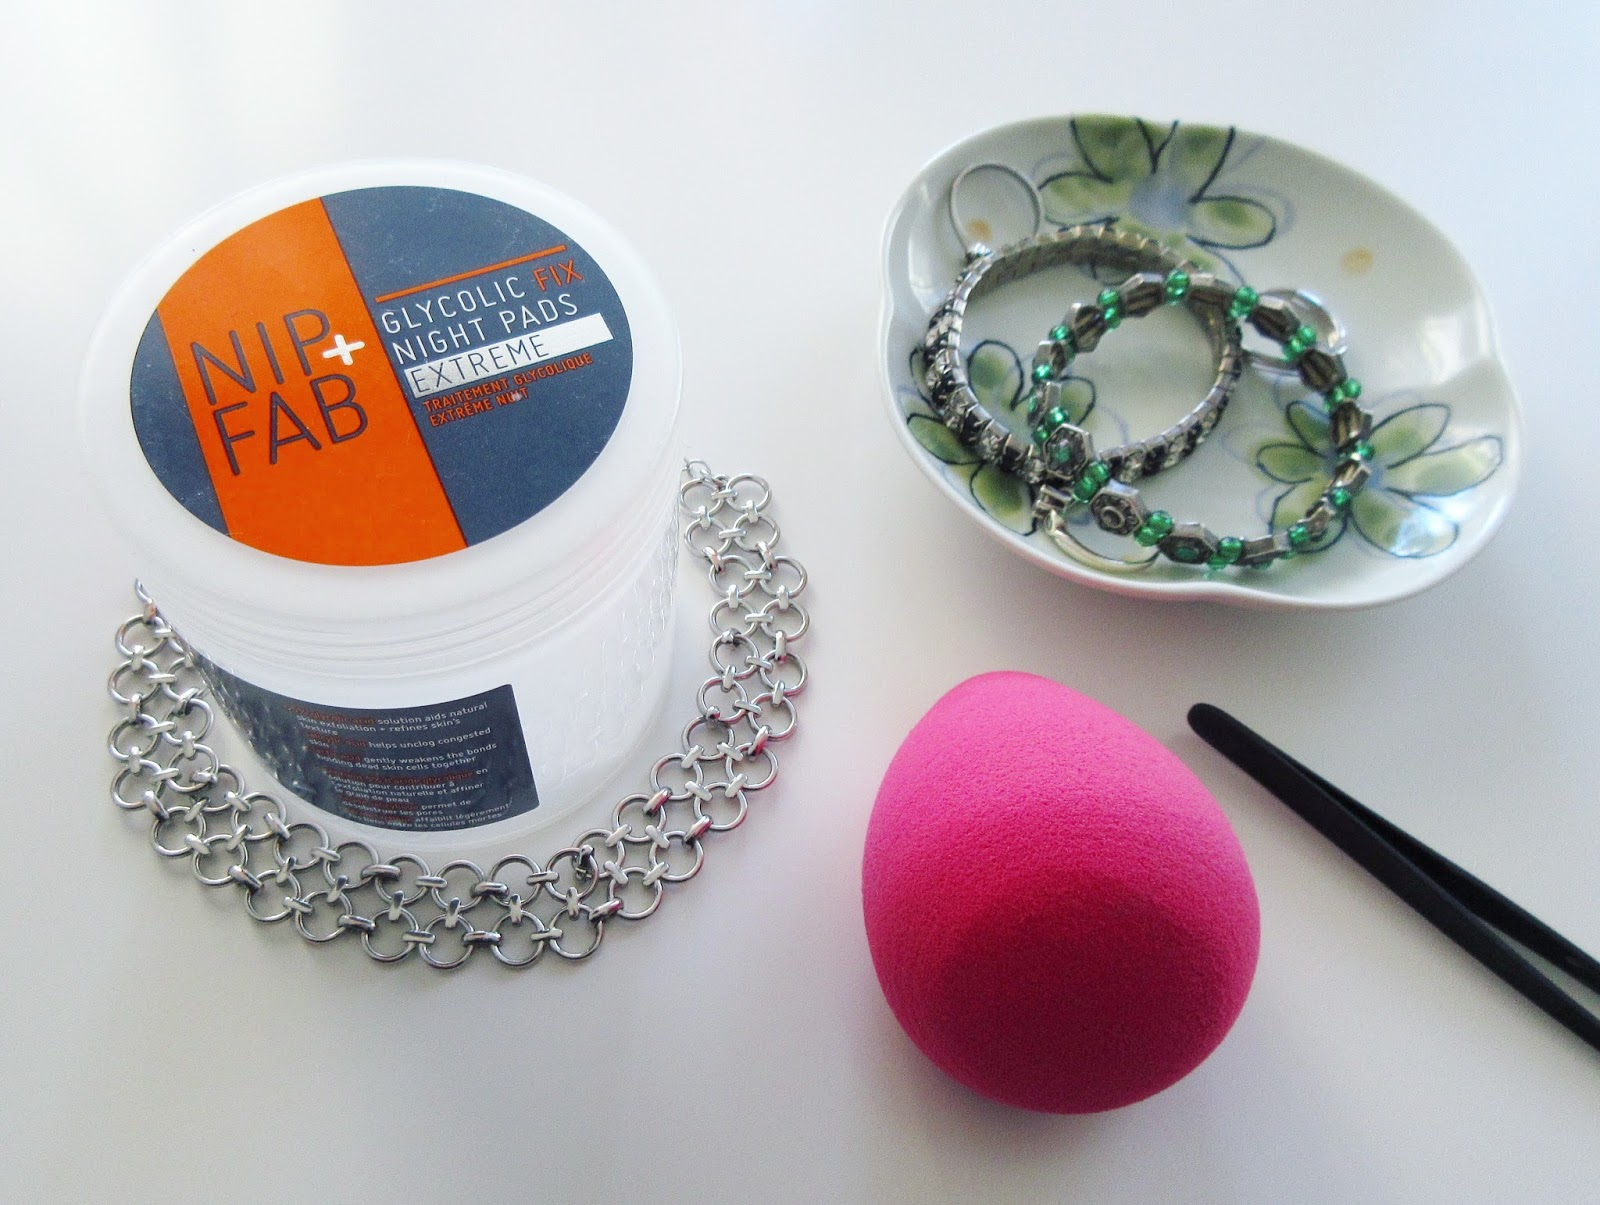 Nip+Fab Glycolic Fix Extreme Night Pads Review